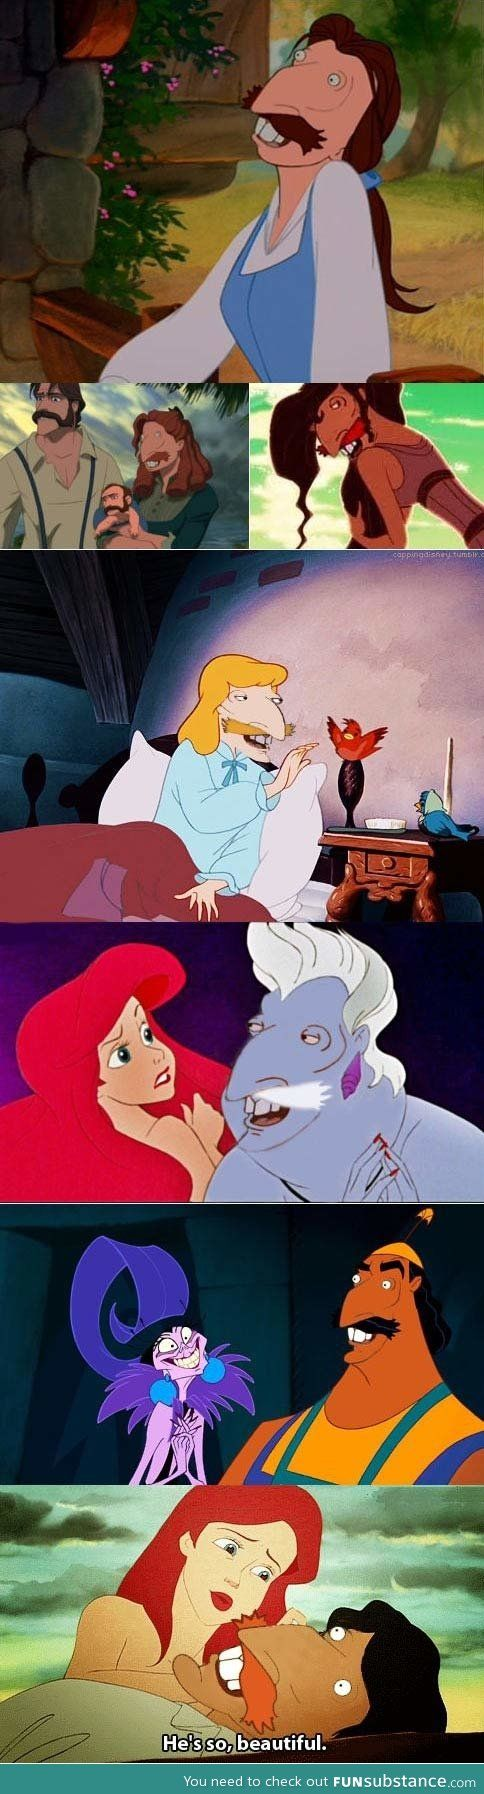 Nigel Thornberry... oh my goodness, thats so scary but I cant stop laughing--help!  #ldisneycharacters #disney